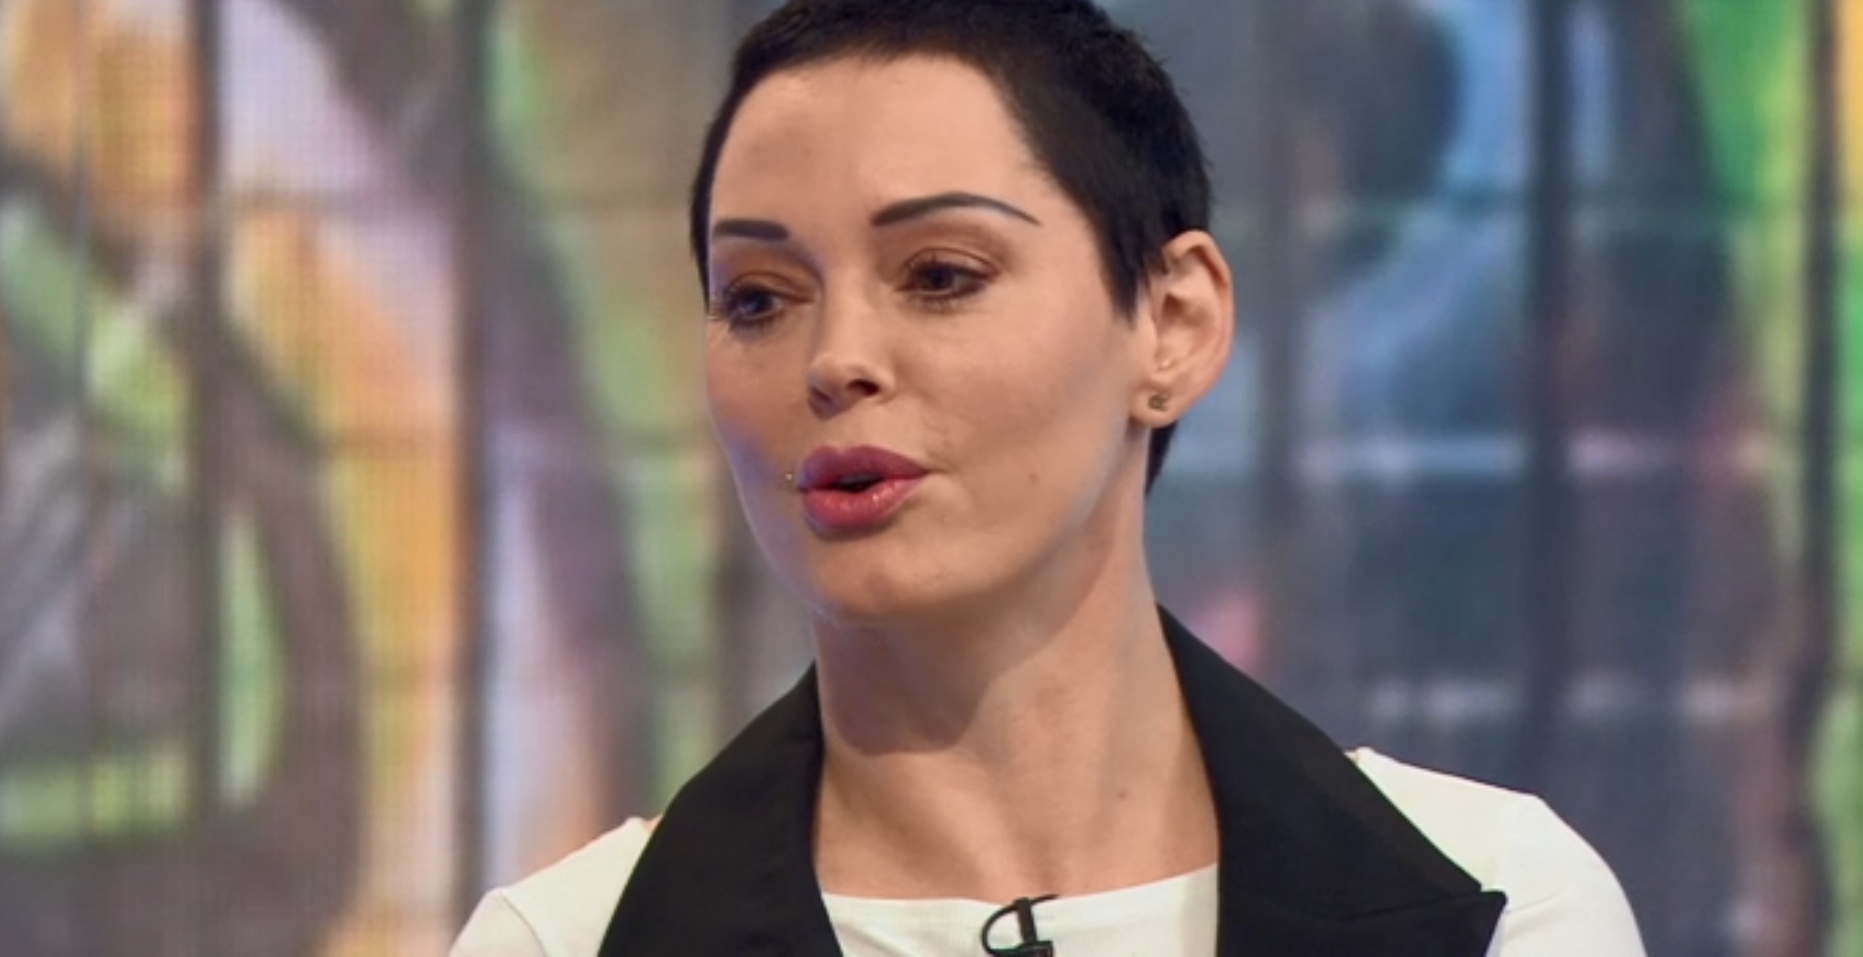 Rose McGowan claims Harvey Weinstein texted her a month ago